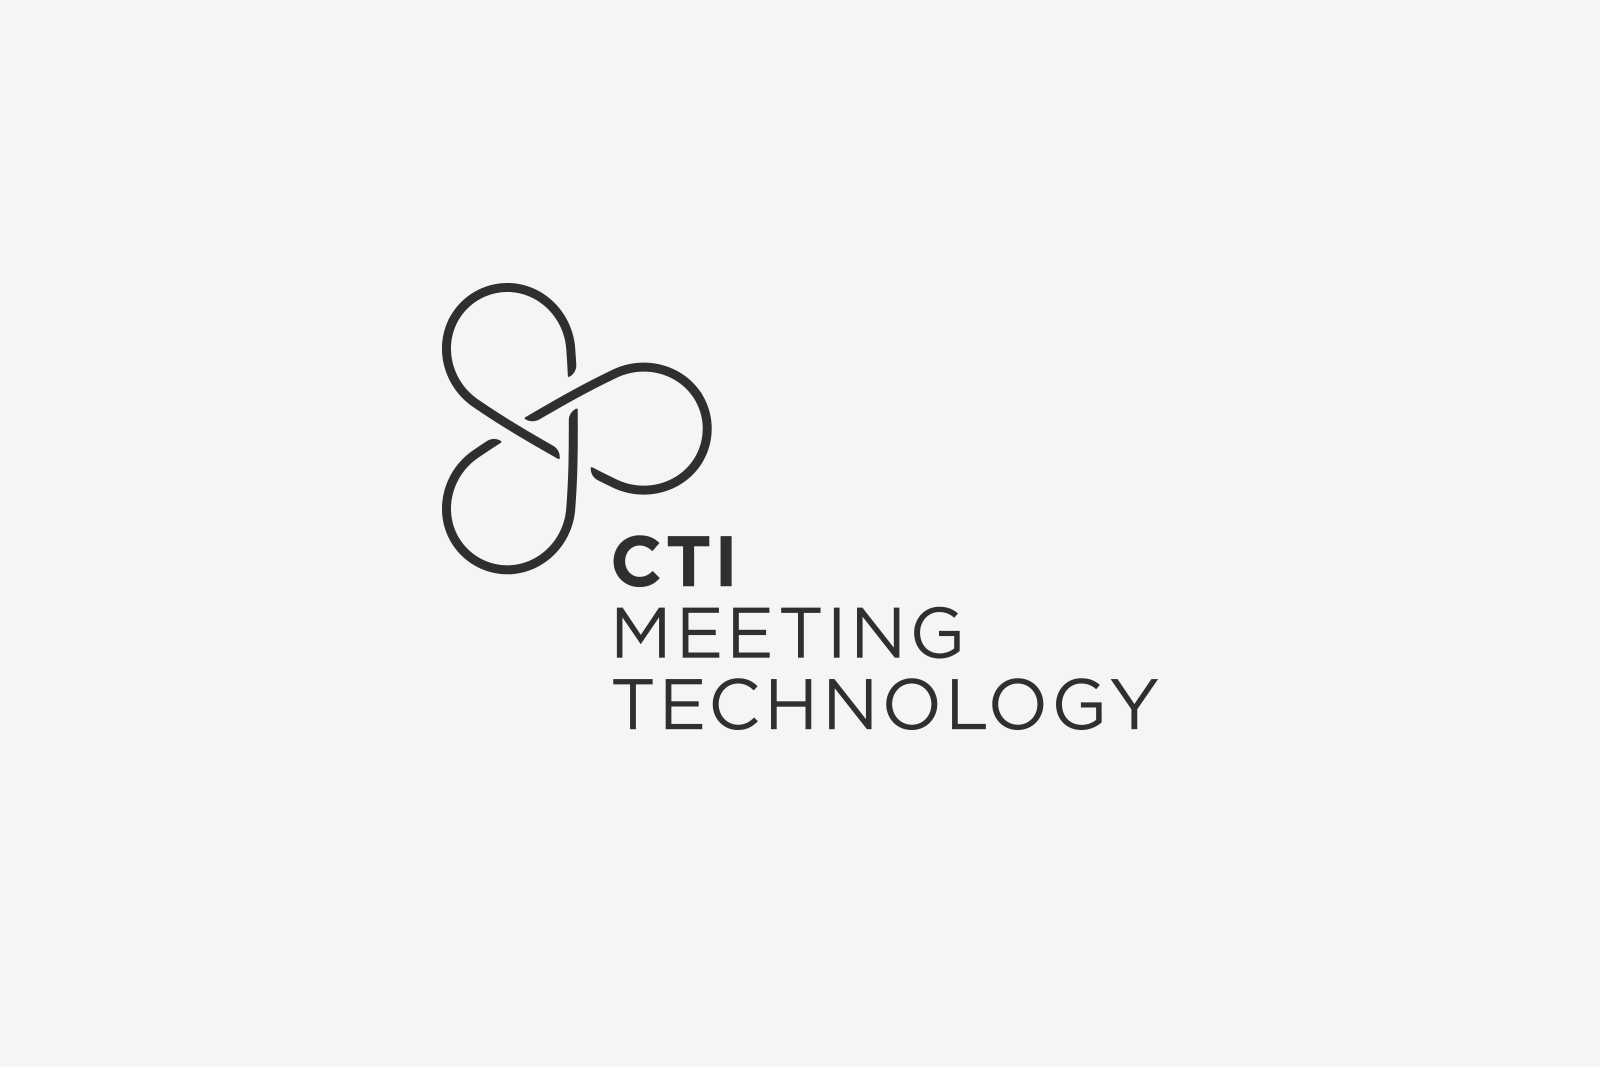 Logo Cti Meeting Technology Bw